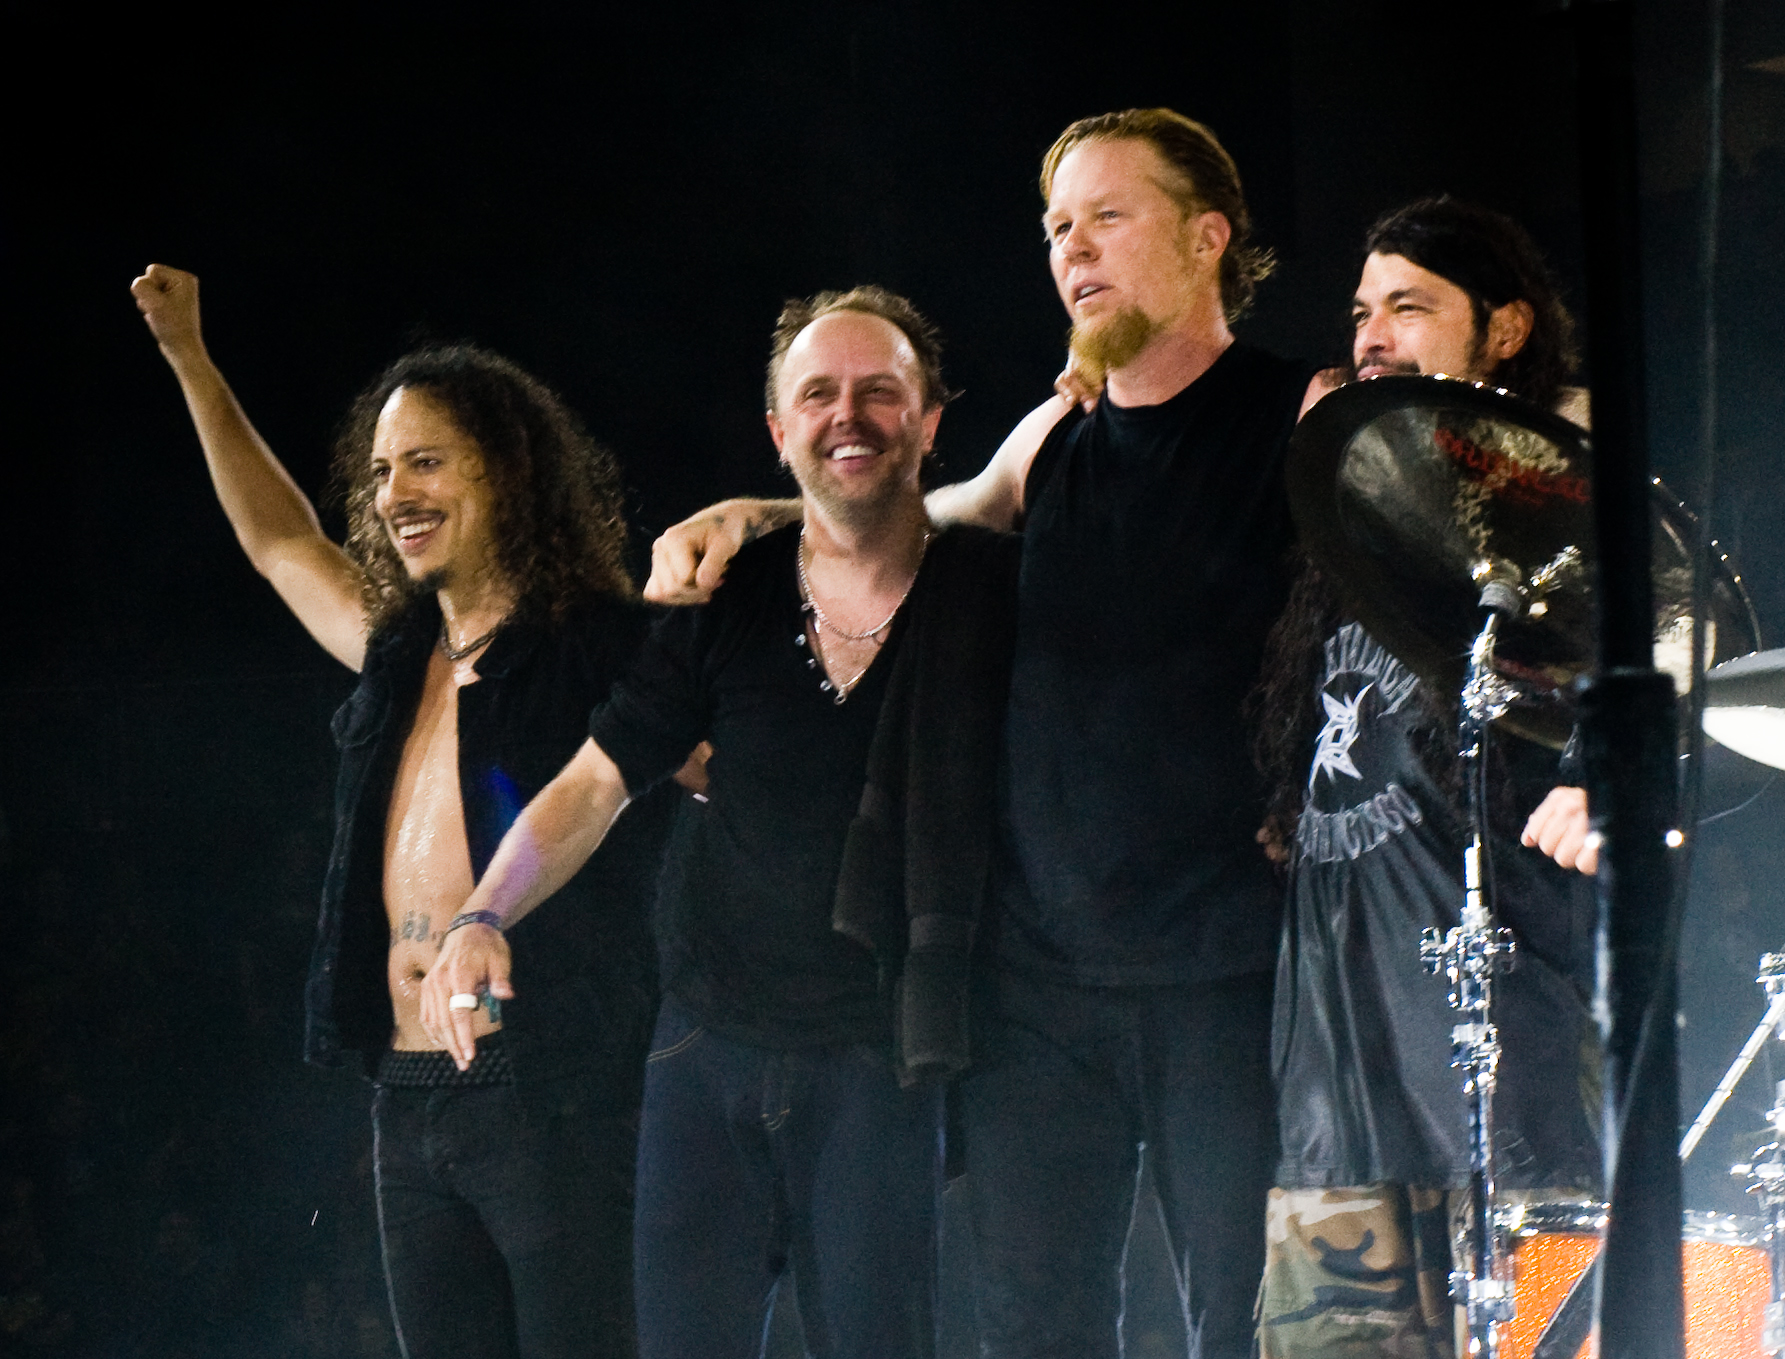 Metallica is an American heavy metal band. The band was formed in in Los Angeles, California by drummer Lars Ulrich and vocalist/guitarist James Hetfield, and has been based in San Francisco, California for most of its career.